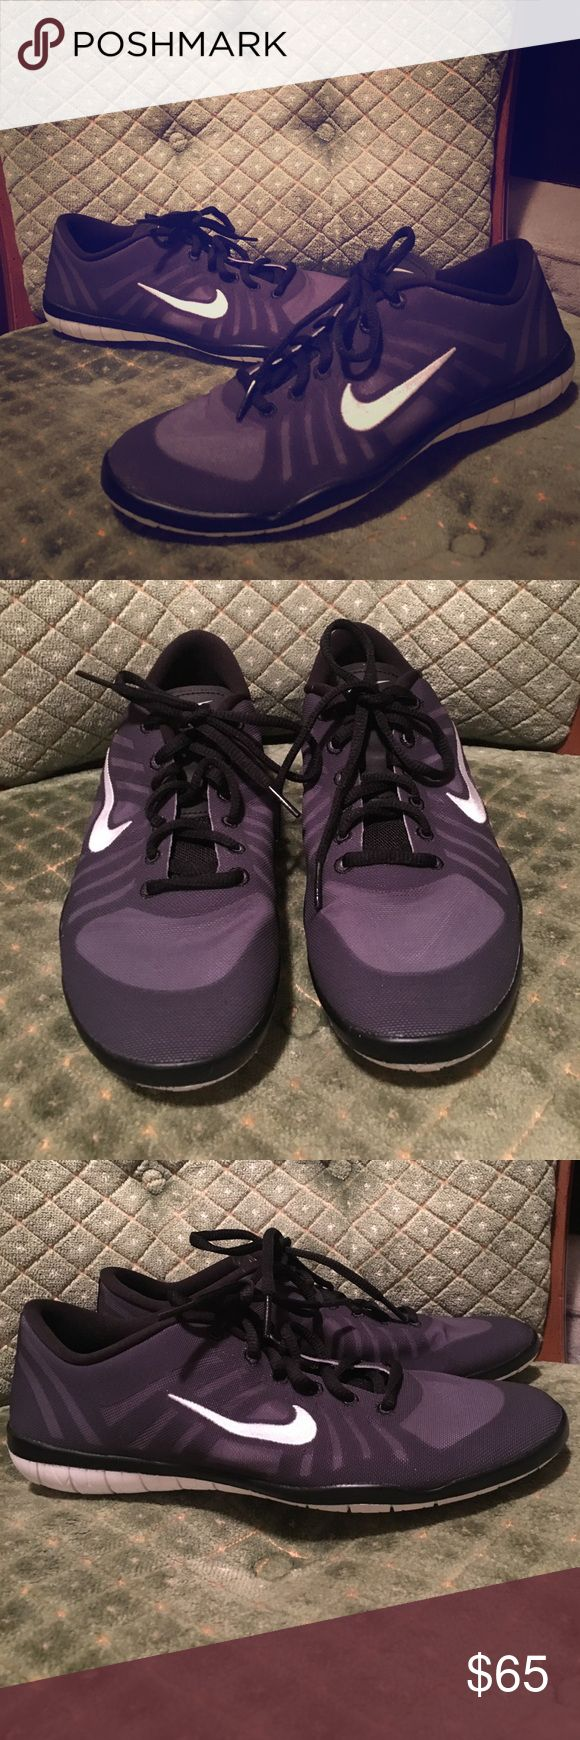 Nike Free 3.0 Studio Dance Shoe Size 8 These Nike Dance shoes are in great condition! Very flexible and lightweight. Bottom and inside soles are in great shape! Nike Shoes Athletic Shoes